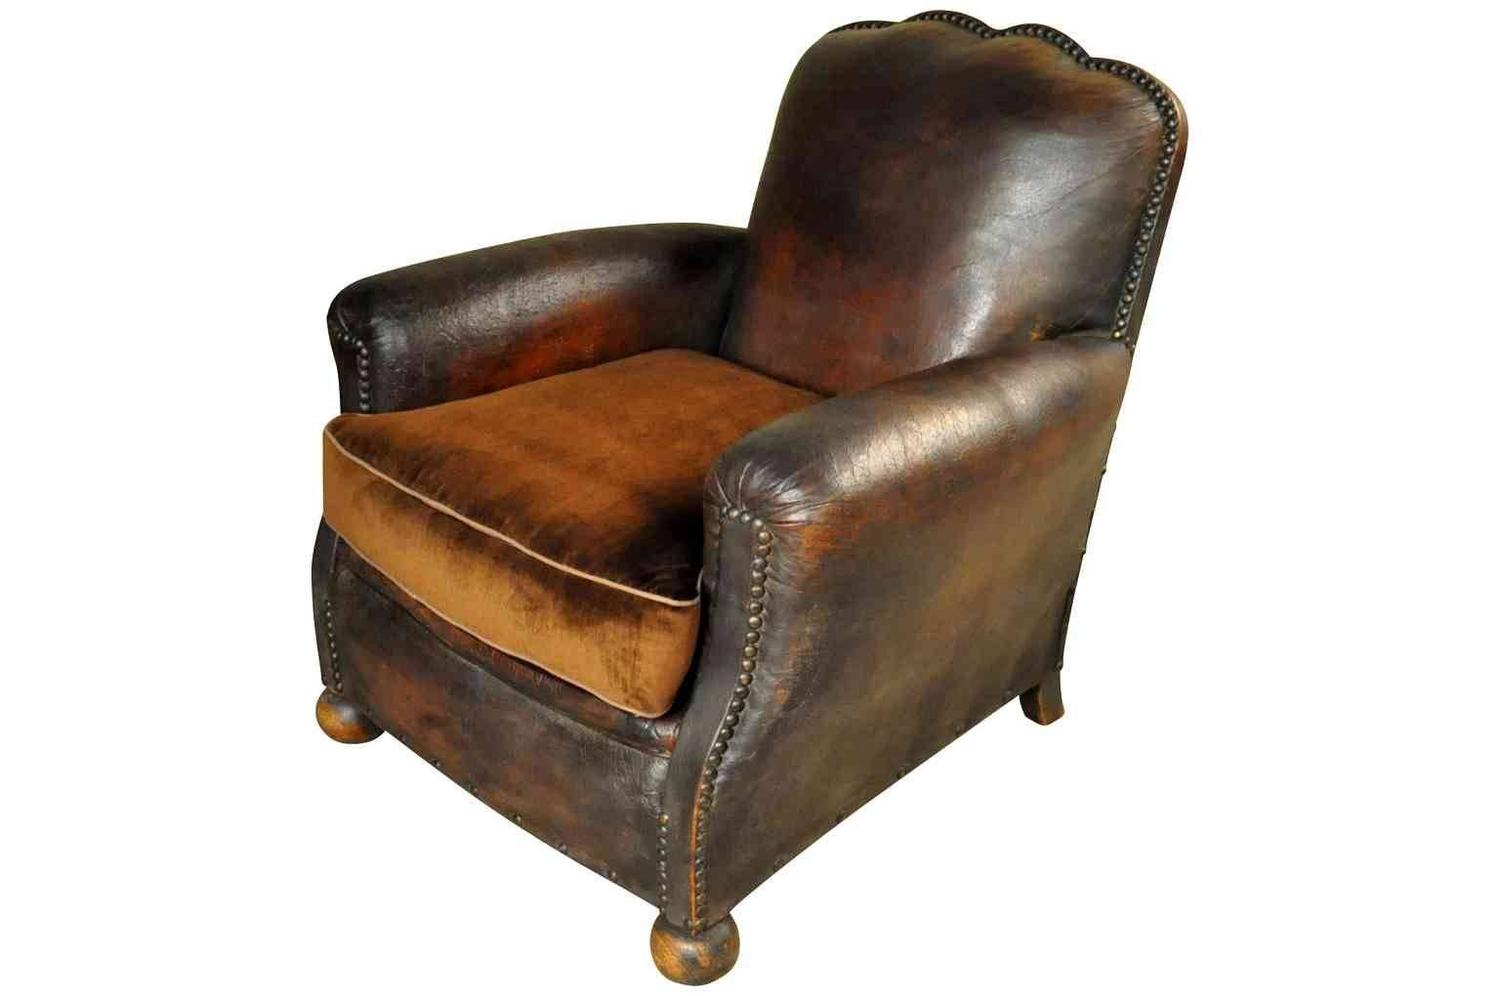 Pair Of French Art Deco Period Club Chairs At 1stdibs